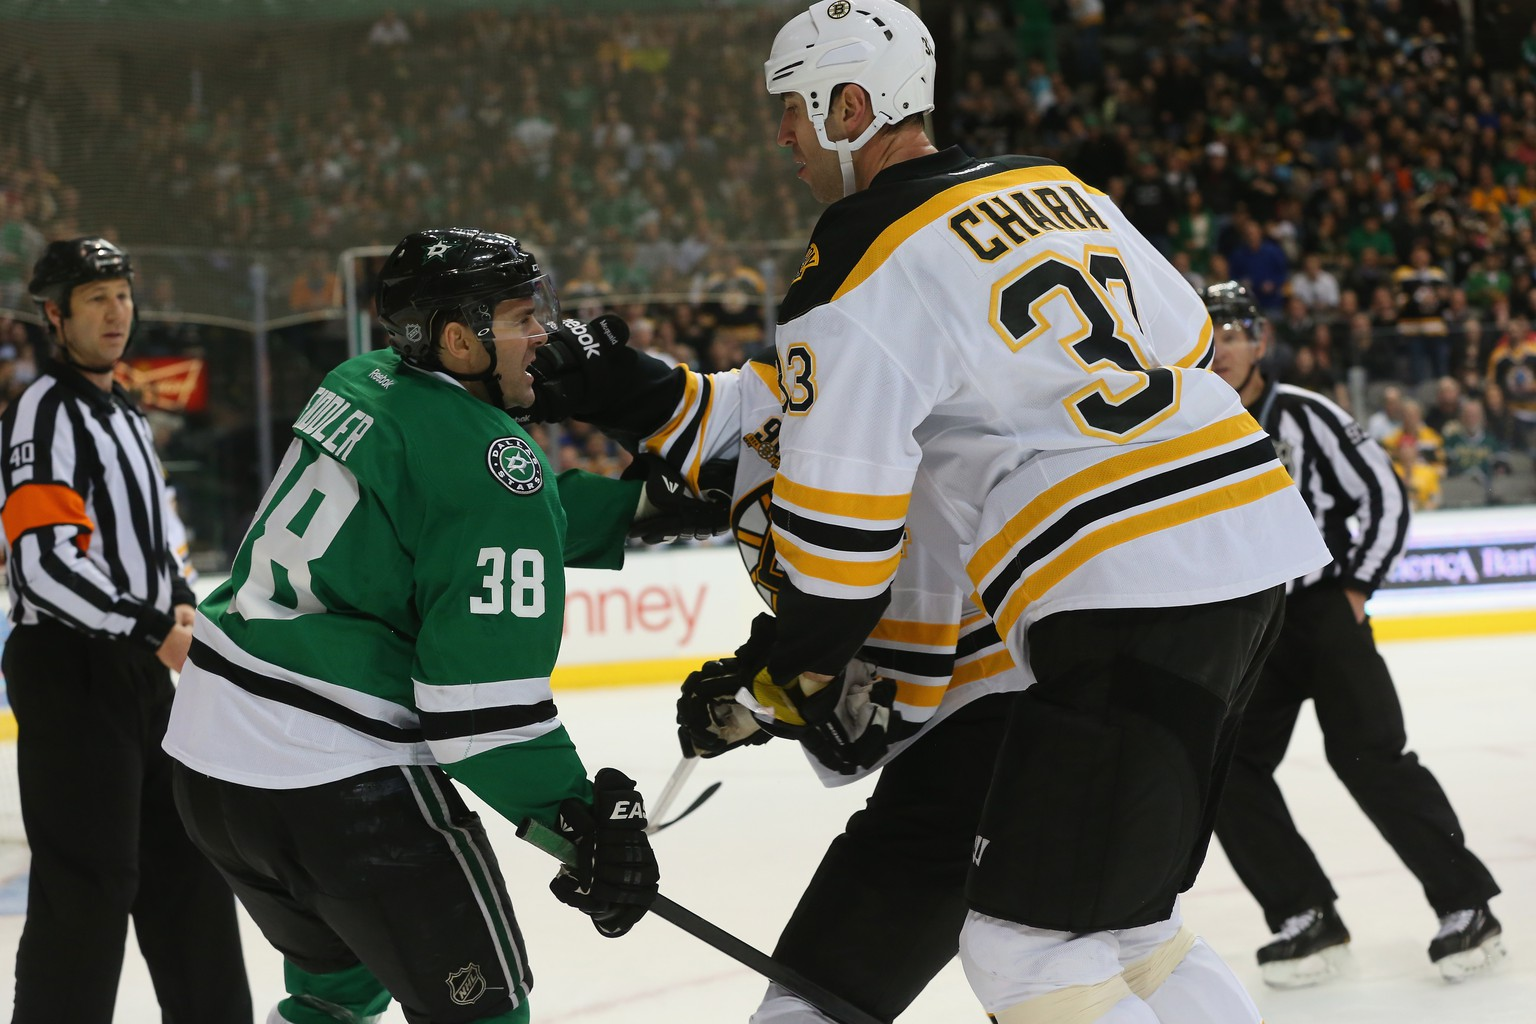 DALLAS, TX - JANUARY 16:  Vernon Fiddler #38 of the Dallas Stars fights with Adam McQuaid #54 and Zdeno Chara #33 of the Boston Bruins in the first period at American Airlines Center on January 16, 2014 in Dallas, Texas.  (Photo by Ronald Martinez/Getty Images)